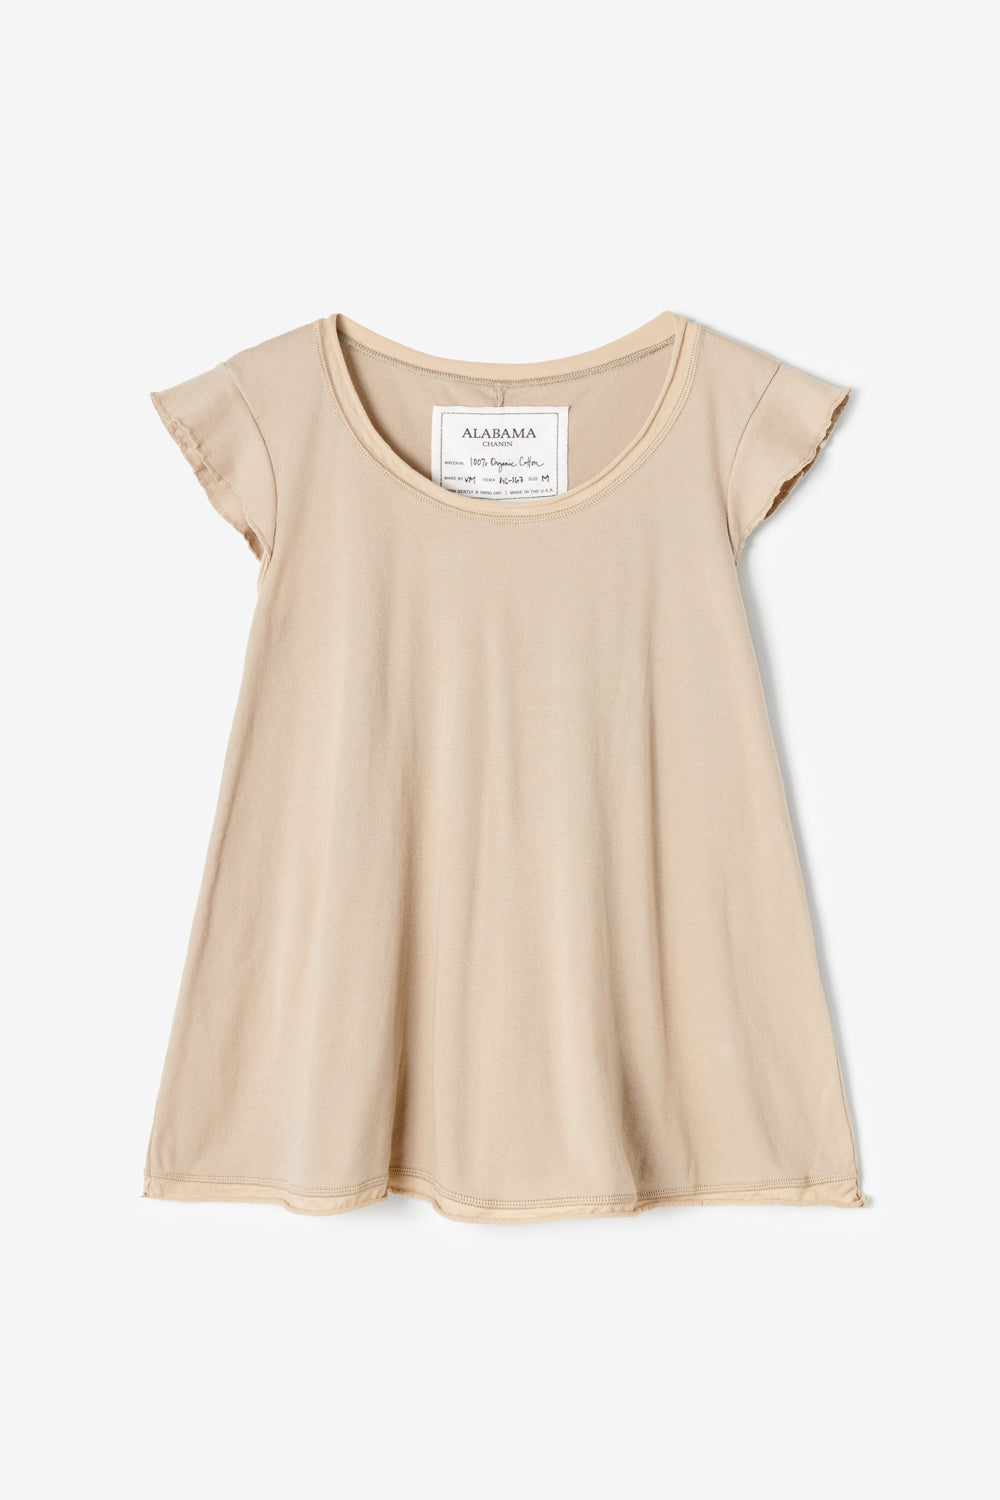 Alabama Chanin The Lyla Top with Flutter Sleeves Organic Cotton in Wax